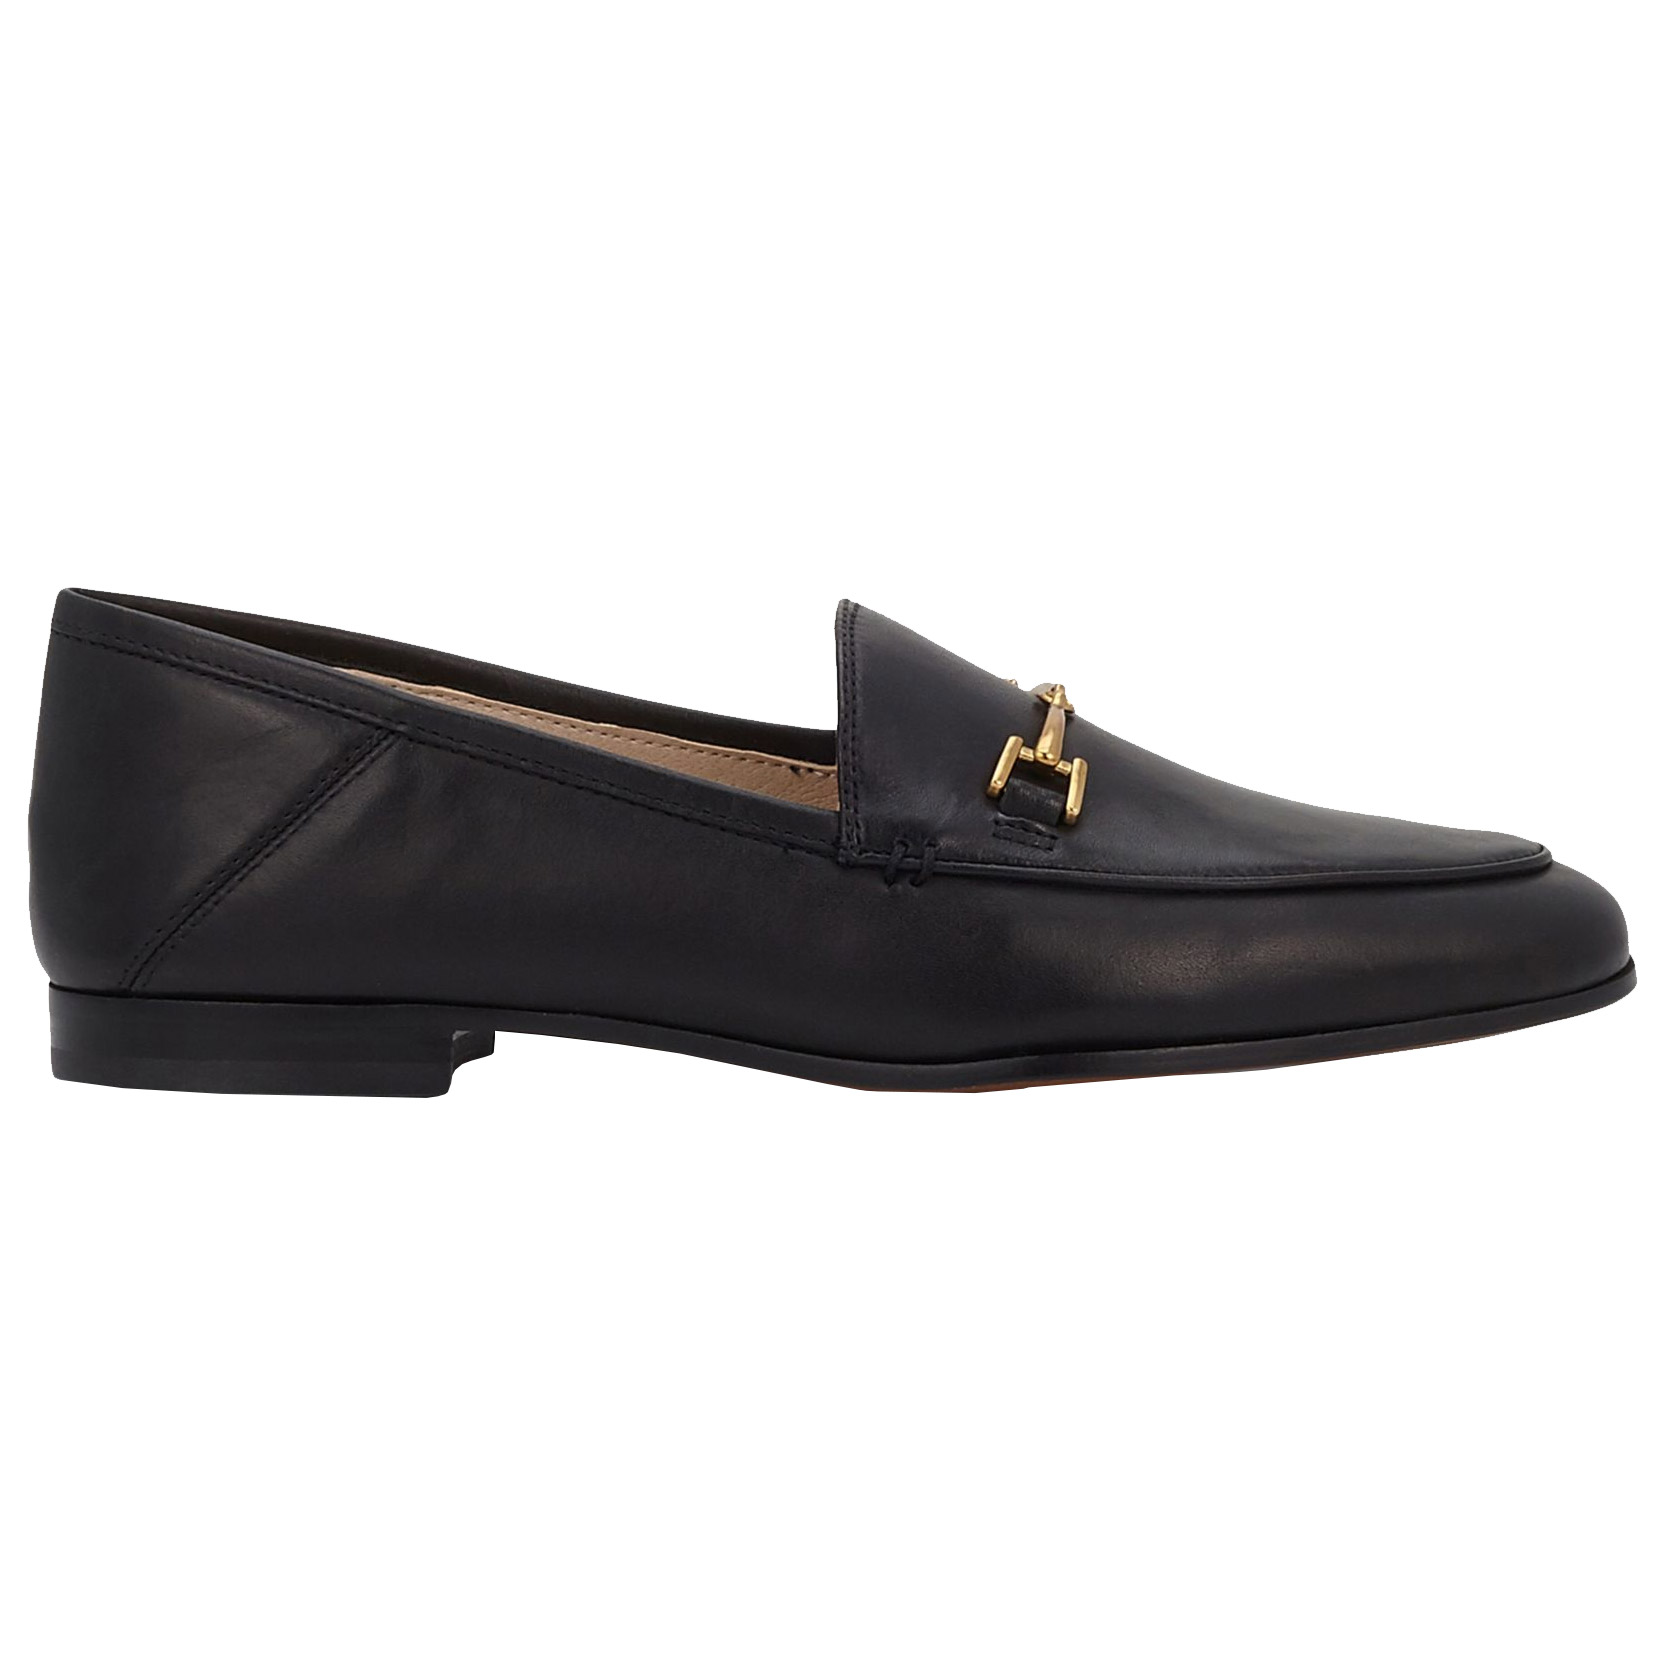 c65b00ddf26e6 Affordable Loafers That Look Just Like Gucci